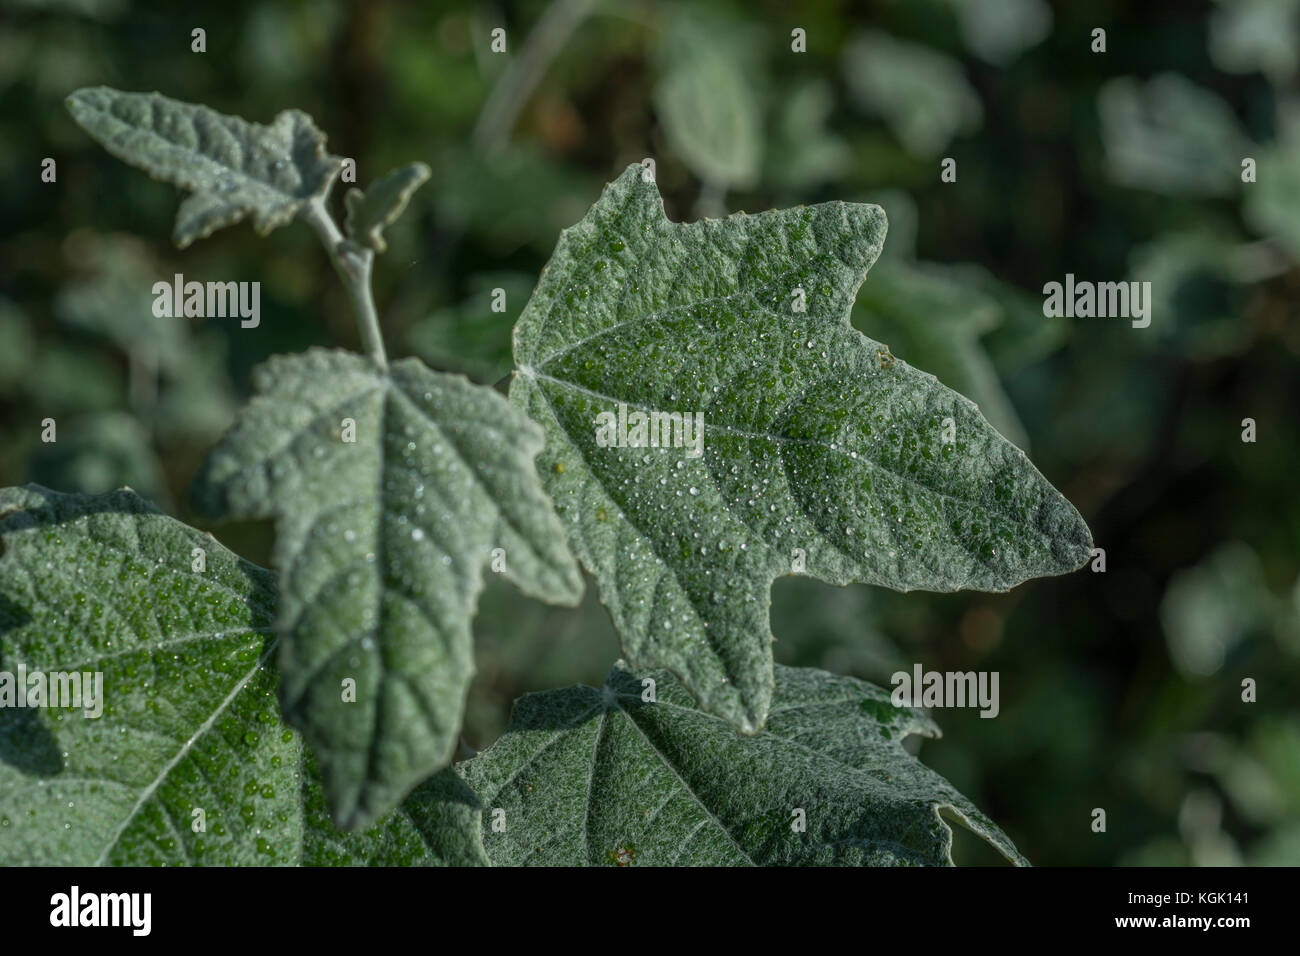 Close up of downy white leaf with fine droplets of morning dew. Shrub species no known. - Stock Image